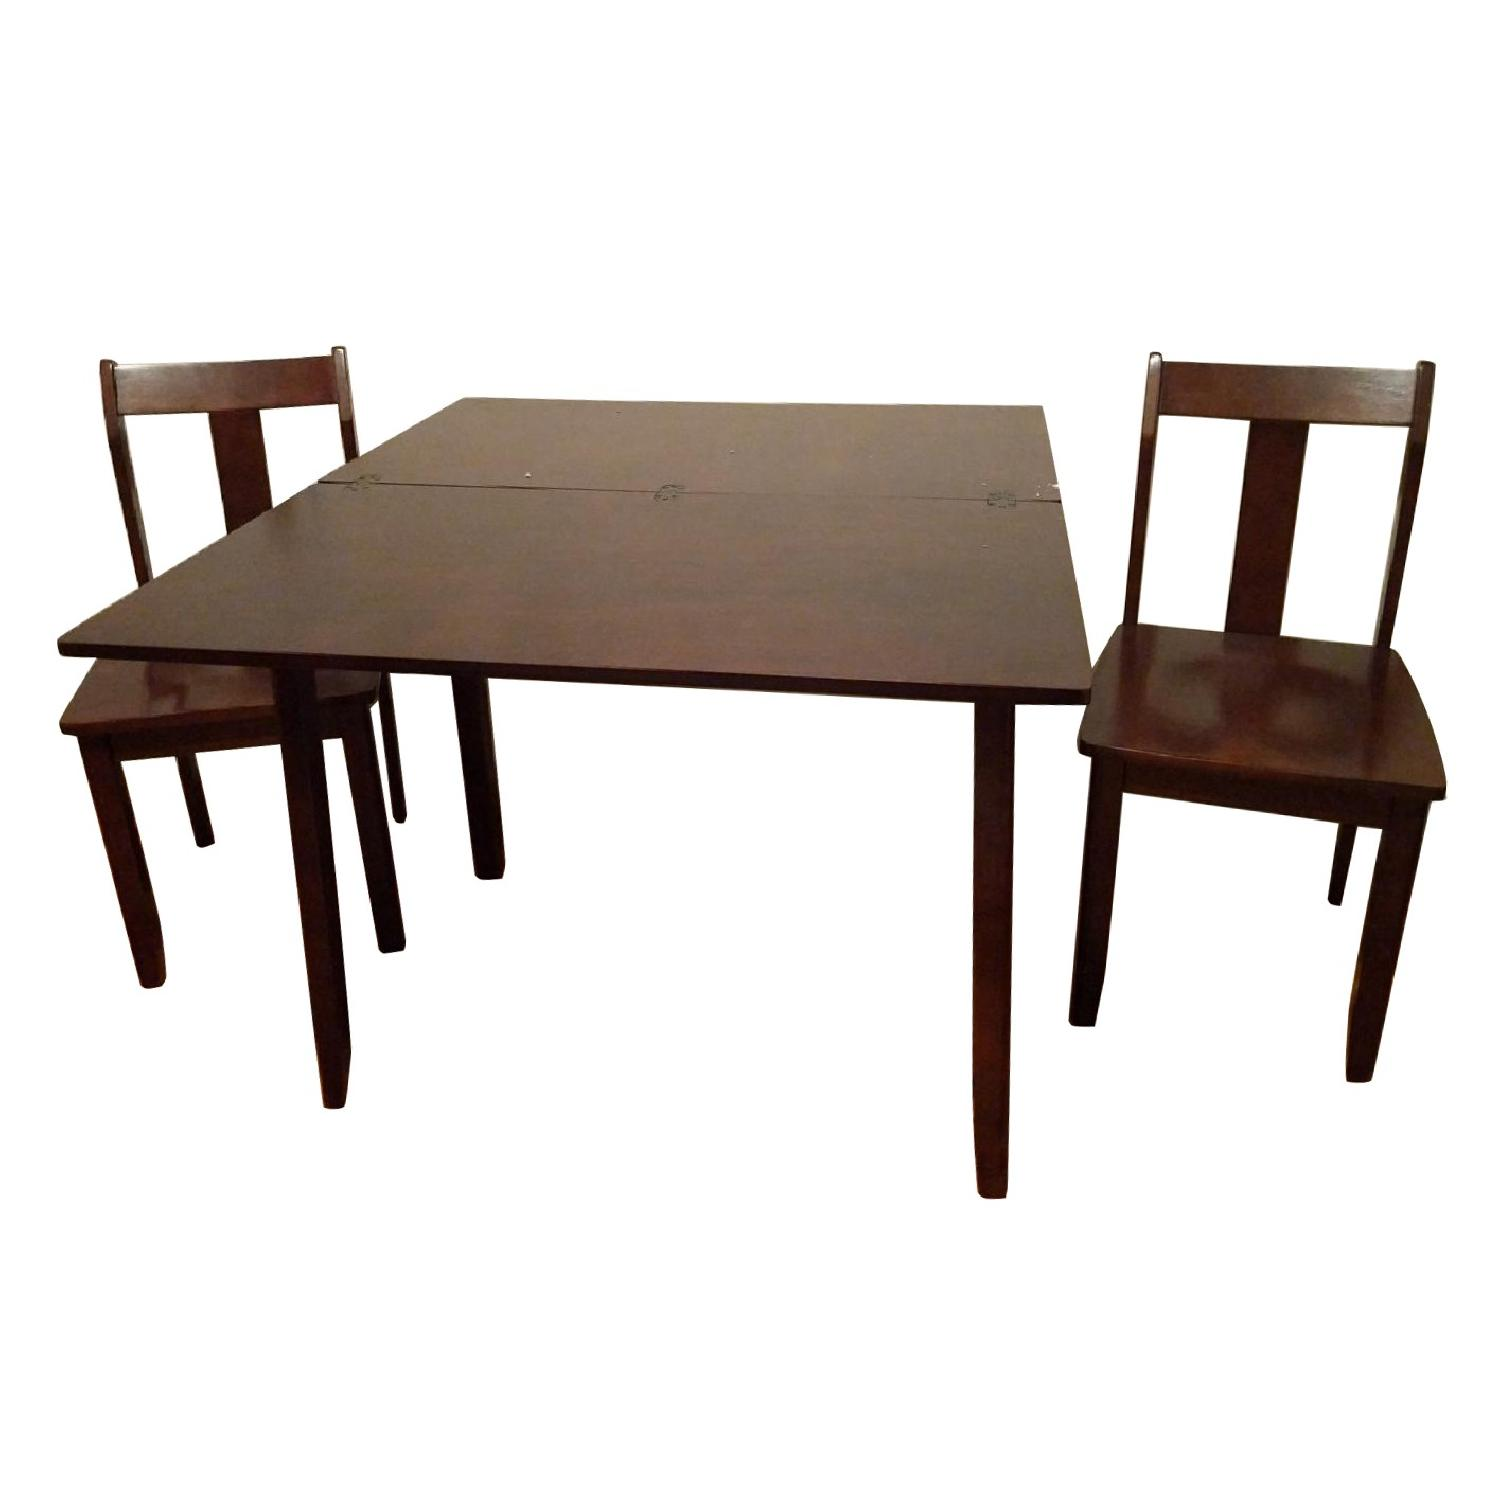 Expandable Brown Dining Table w/ 2 Chairs